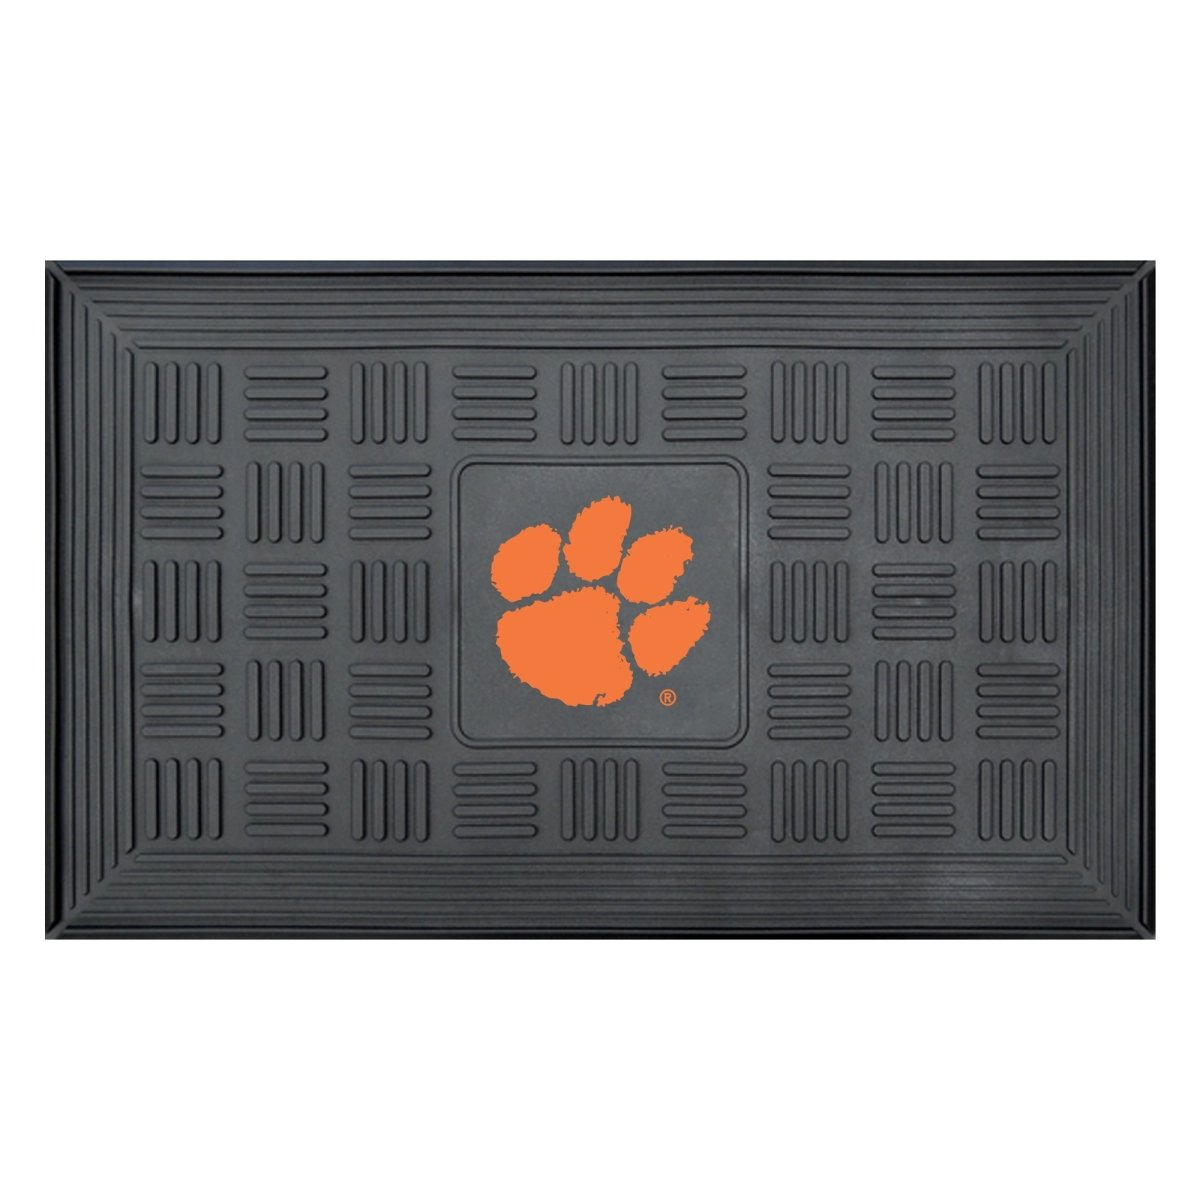 Fanmats Clemson Tigers Vinyl Door Mat - Mr. Knickerbocker